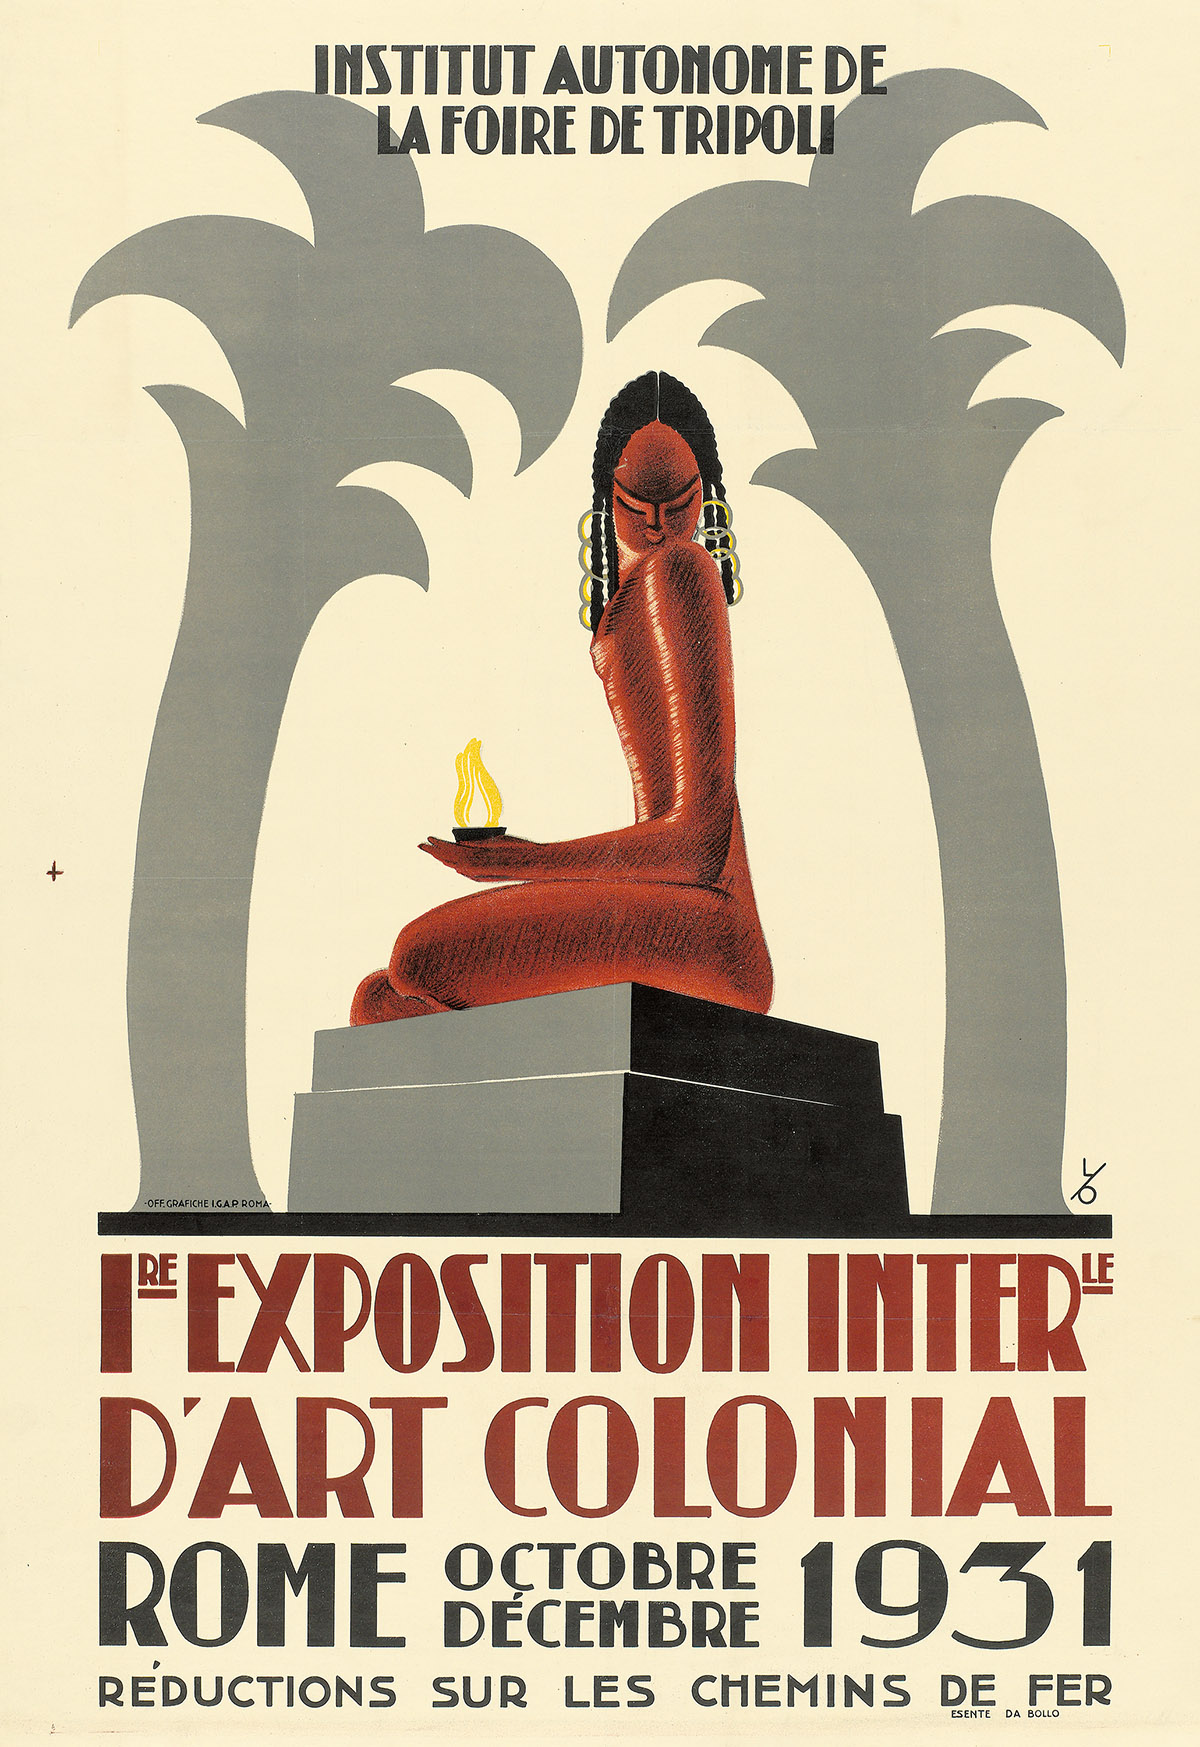 MONOGRAM UNKNOWN. 1RE EXPOSITION INTERLE DART COLONIAL / ROME. 1931. 31x23 inches, 78x58 cm. I.G.A.P., Rome.